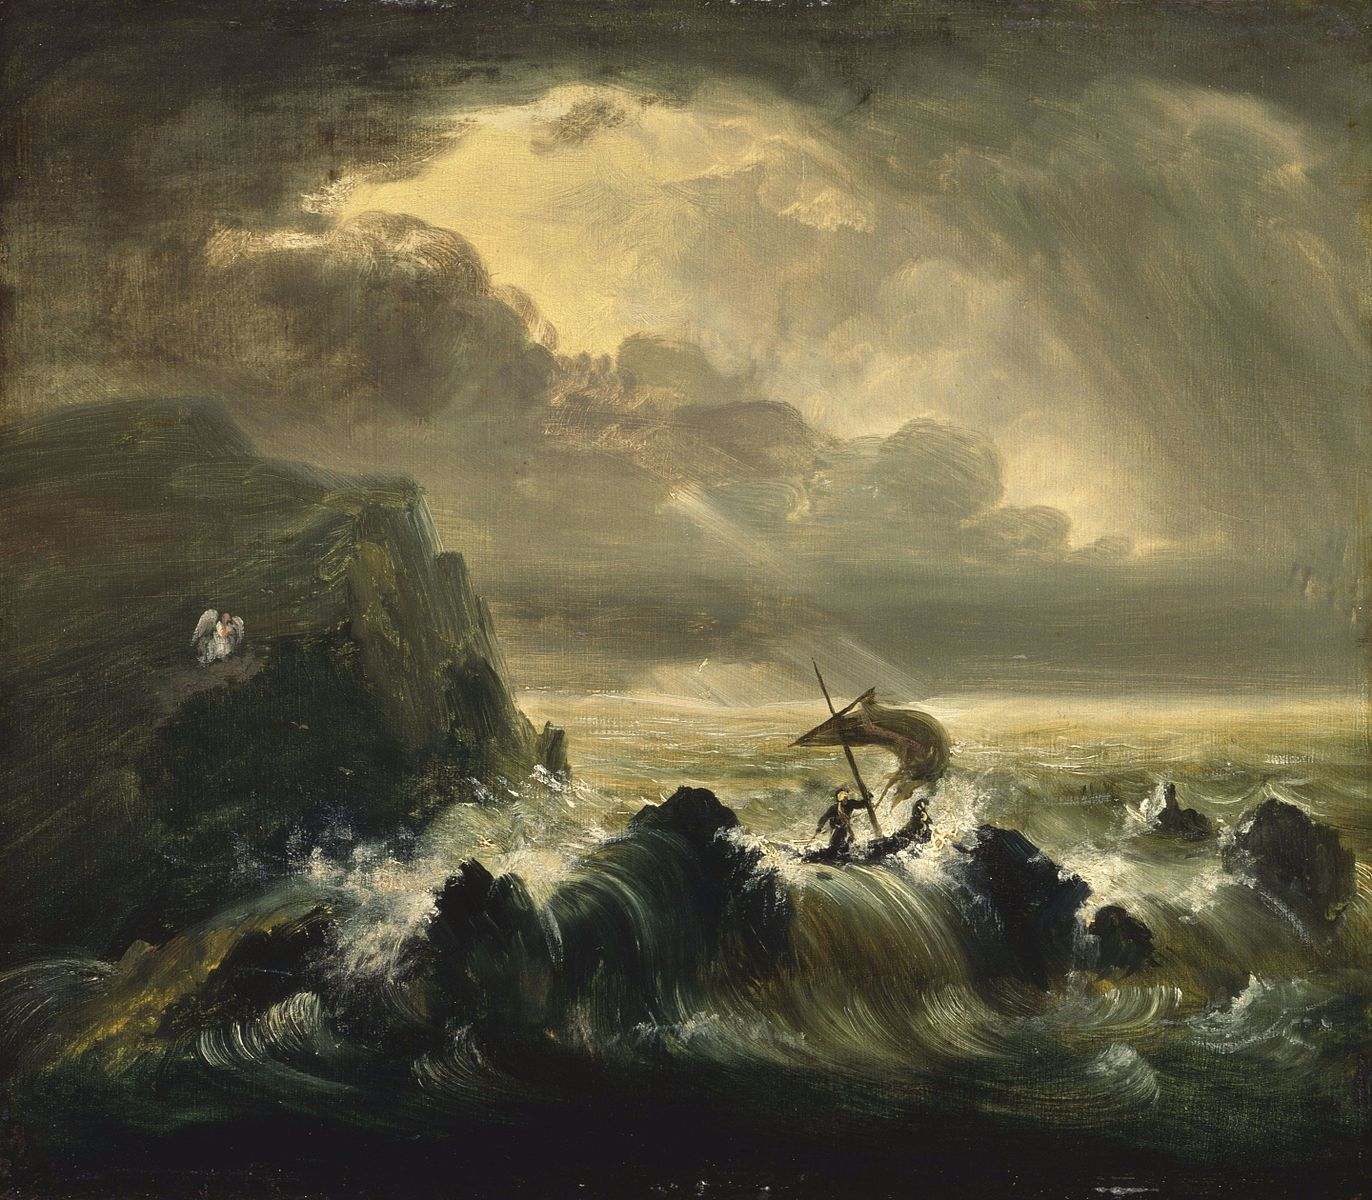 Thomas_Cole_-_The_Voyage_of_Life_3 Manhood,_1839_(Albany_Institute_of_History_Art)